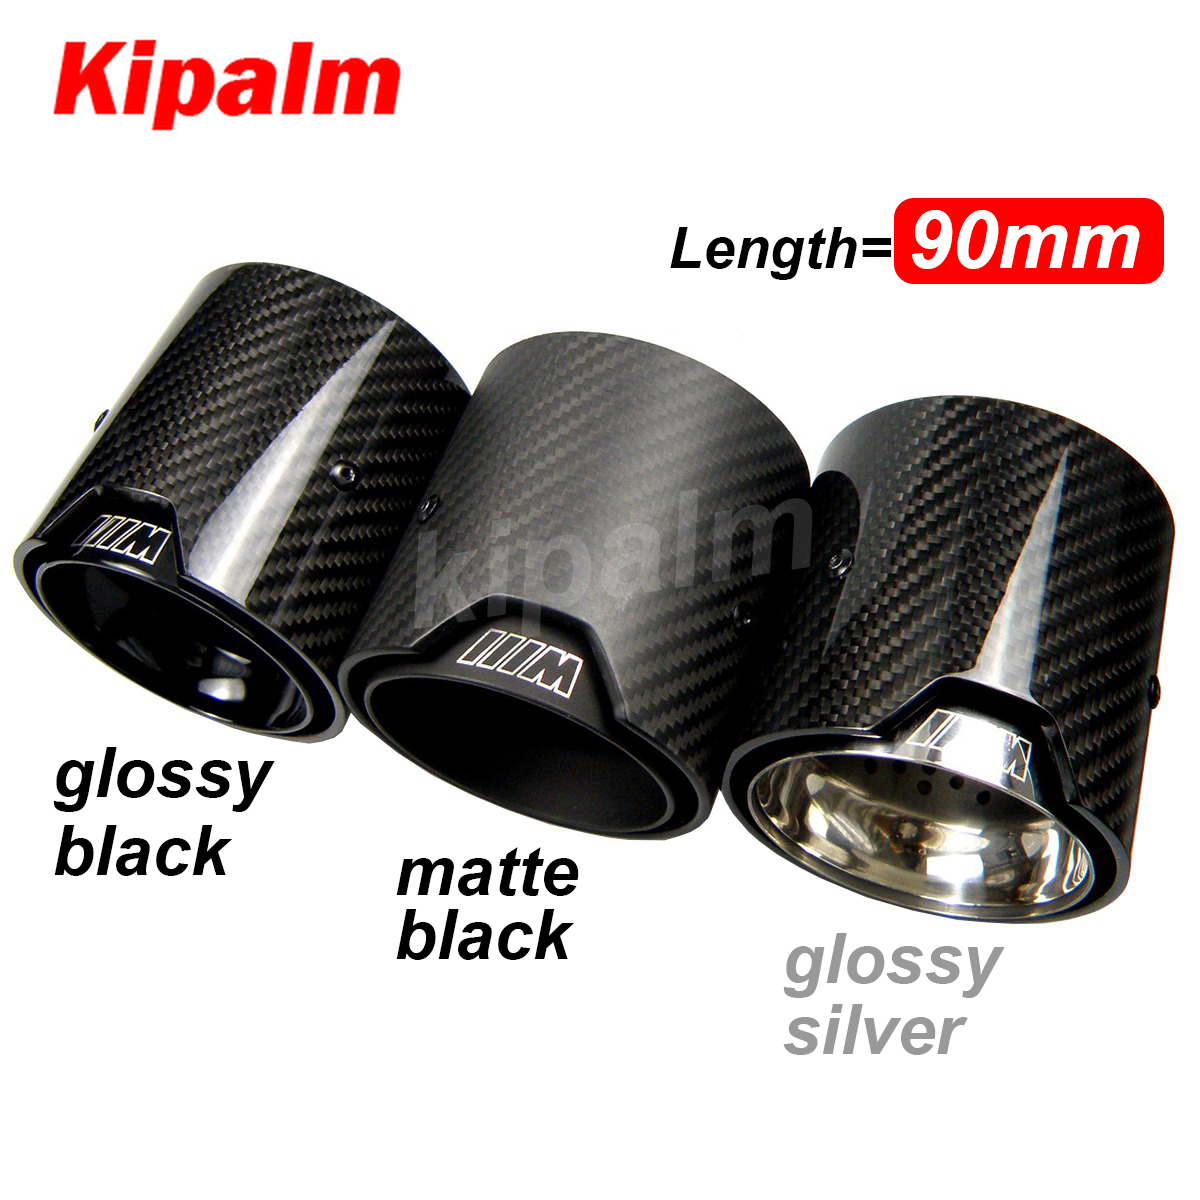 1pcs universal m logo carbon fiber exhaust tips for m performance exhaust pipe for bmw muffler tail pipe 90mm length